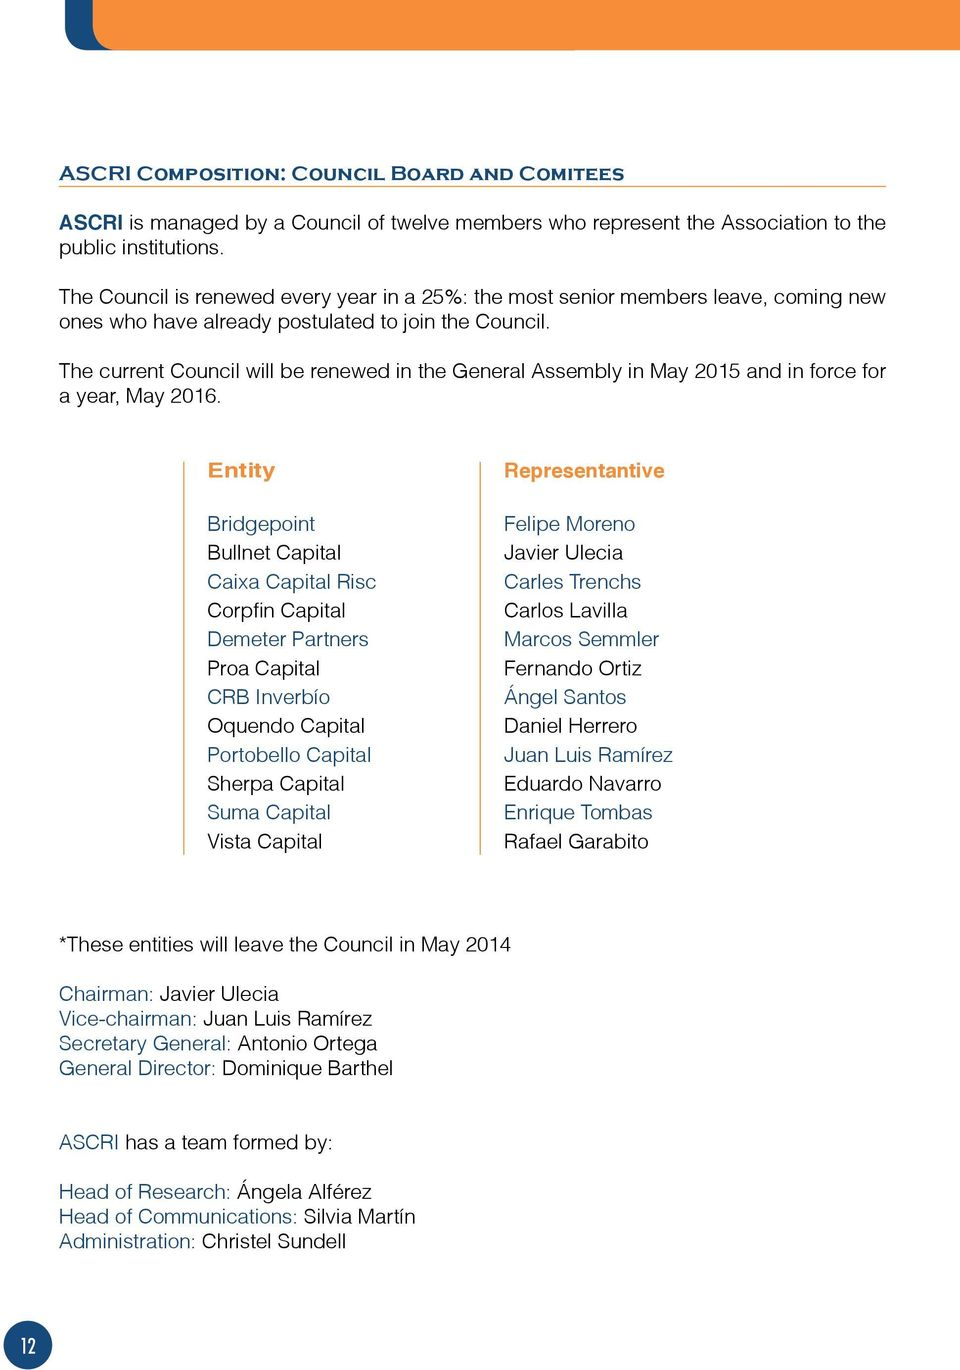 The current Council will be renewed in the General Assembly in May 2015 and in force for a year, May 2016.